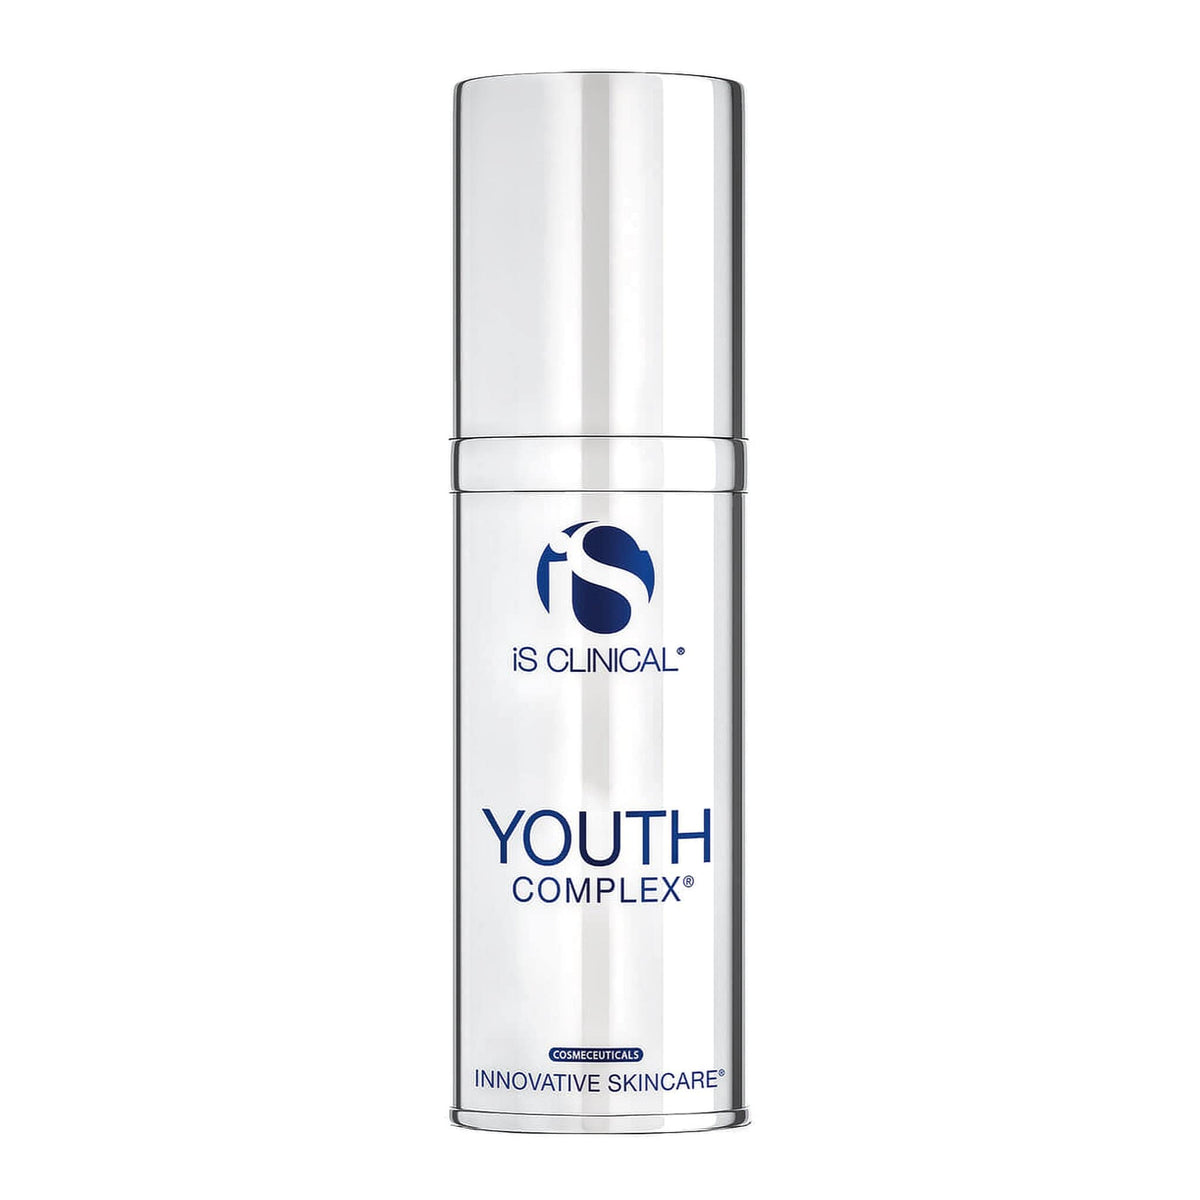 IS CLINICAL - YOUTH COMPLEX - Beauty Nook